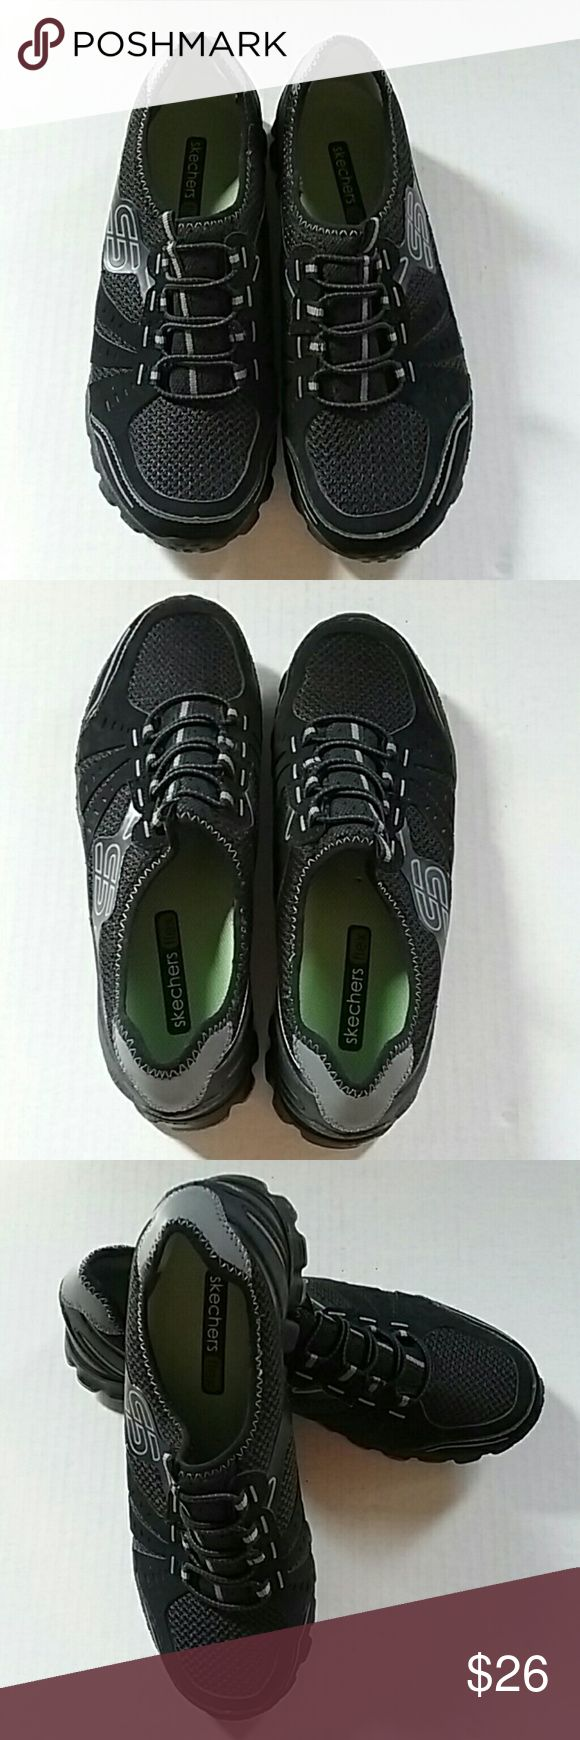 Skechers Black Flex Slip on shoes Size 6 This is a pair of Skechers black Flex slip on shoes. Size 6. They are an excellent preowned condition. Skechers Shoes Athletic Shoes